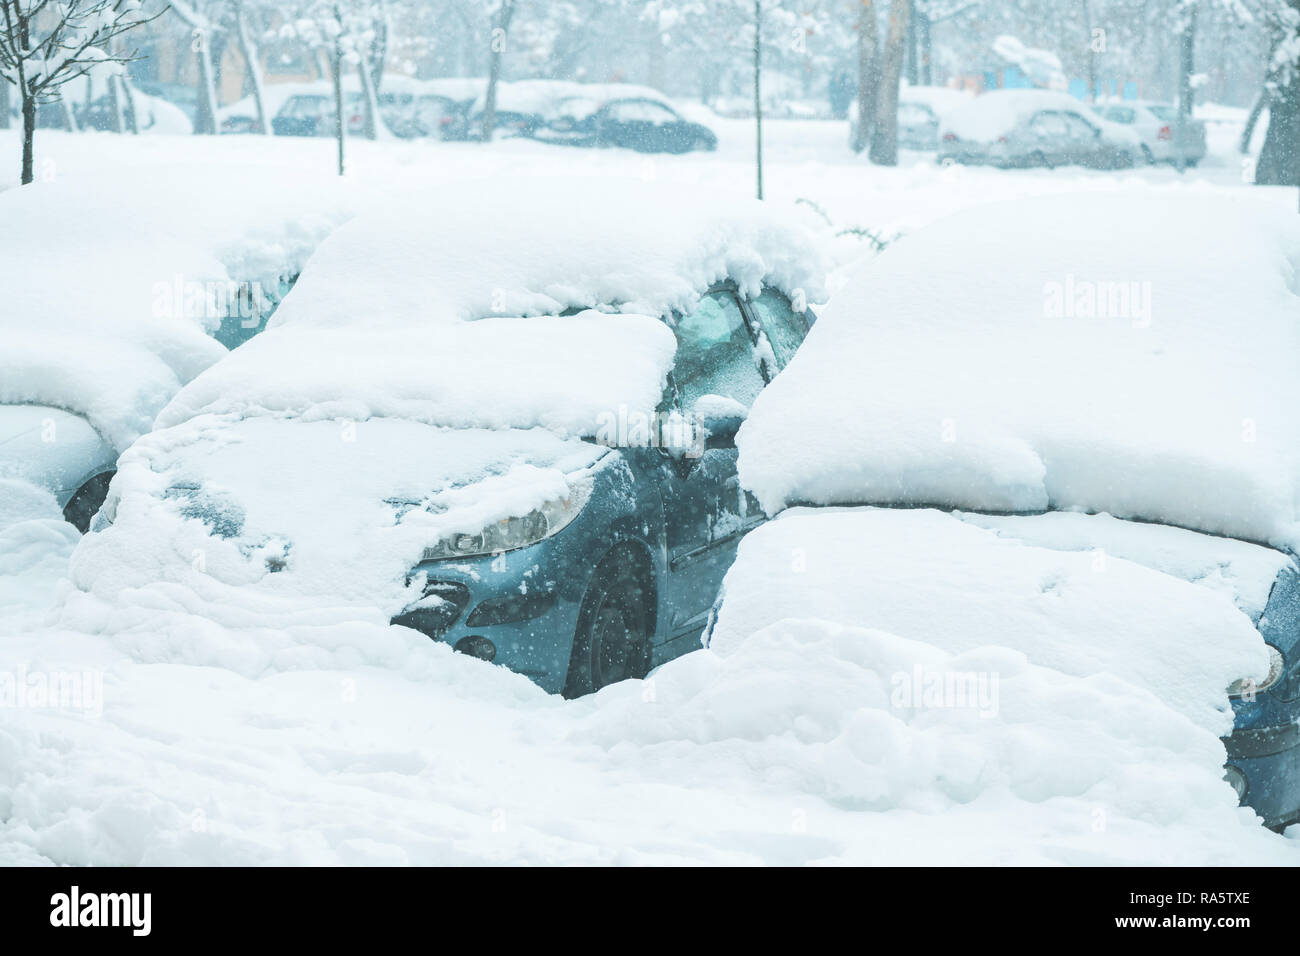 Automobile parking lot with cars covered in snow, parked vehicles in winter season with harsh traffic conditions - Stock Image